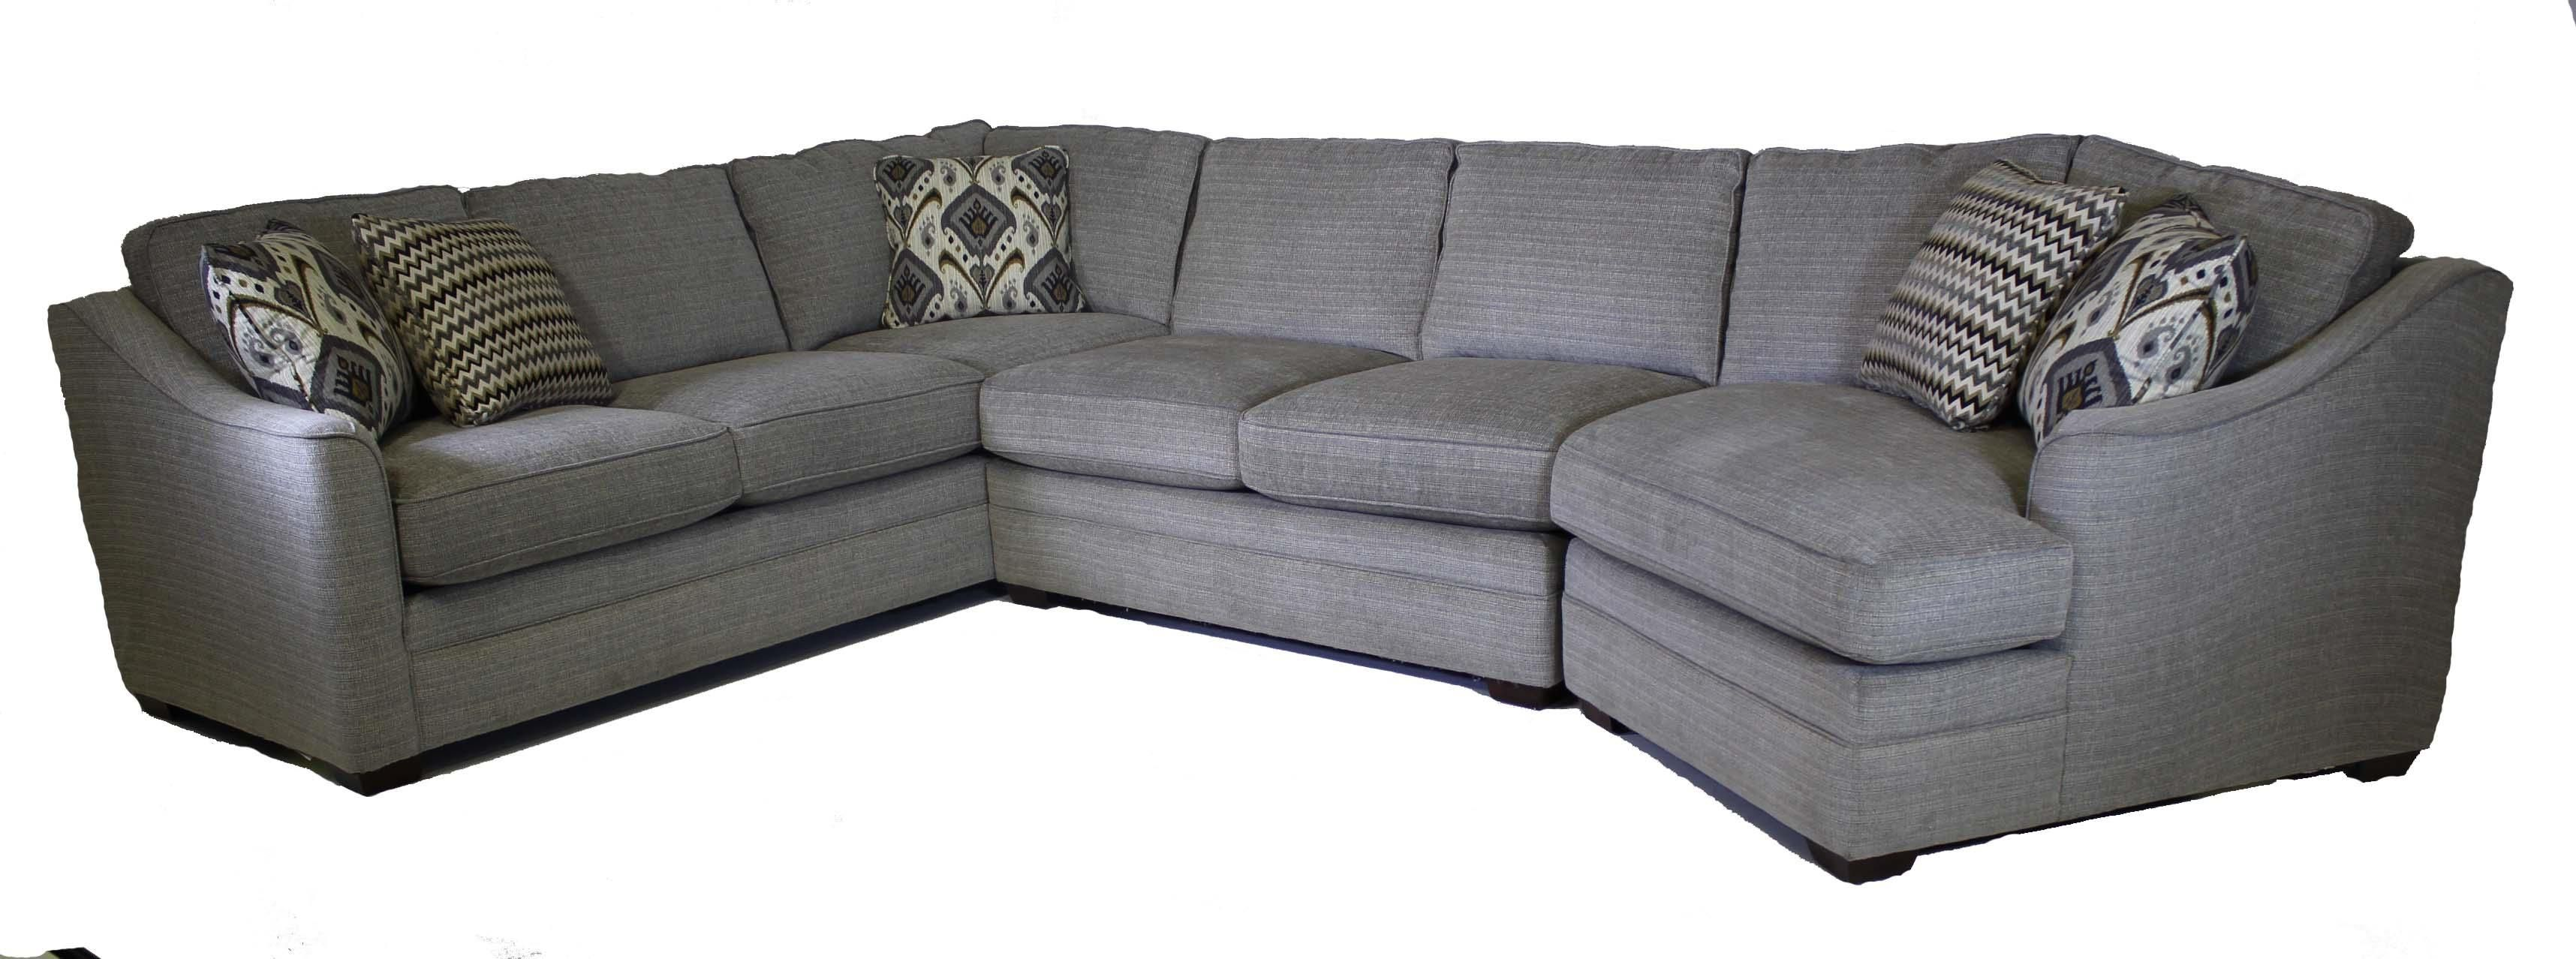 sectional ashley with pantomine coleman cuddler htm from laf driftwood couch